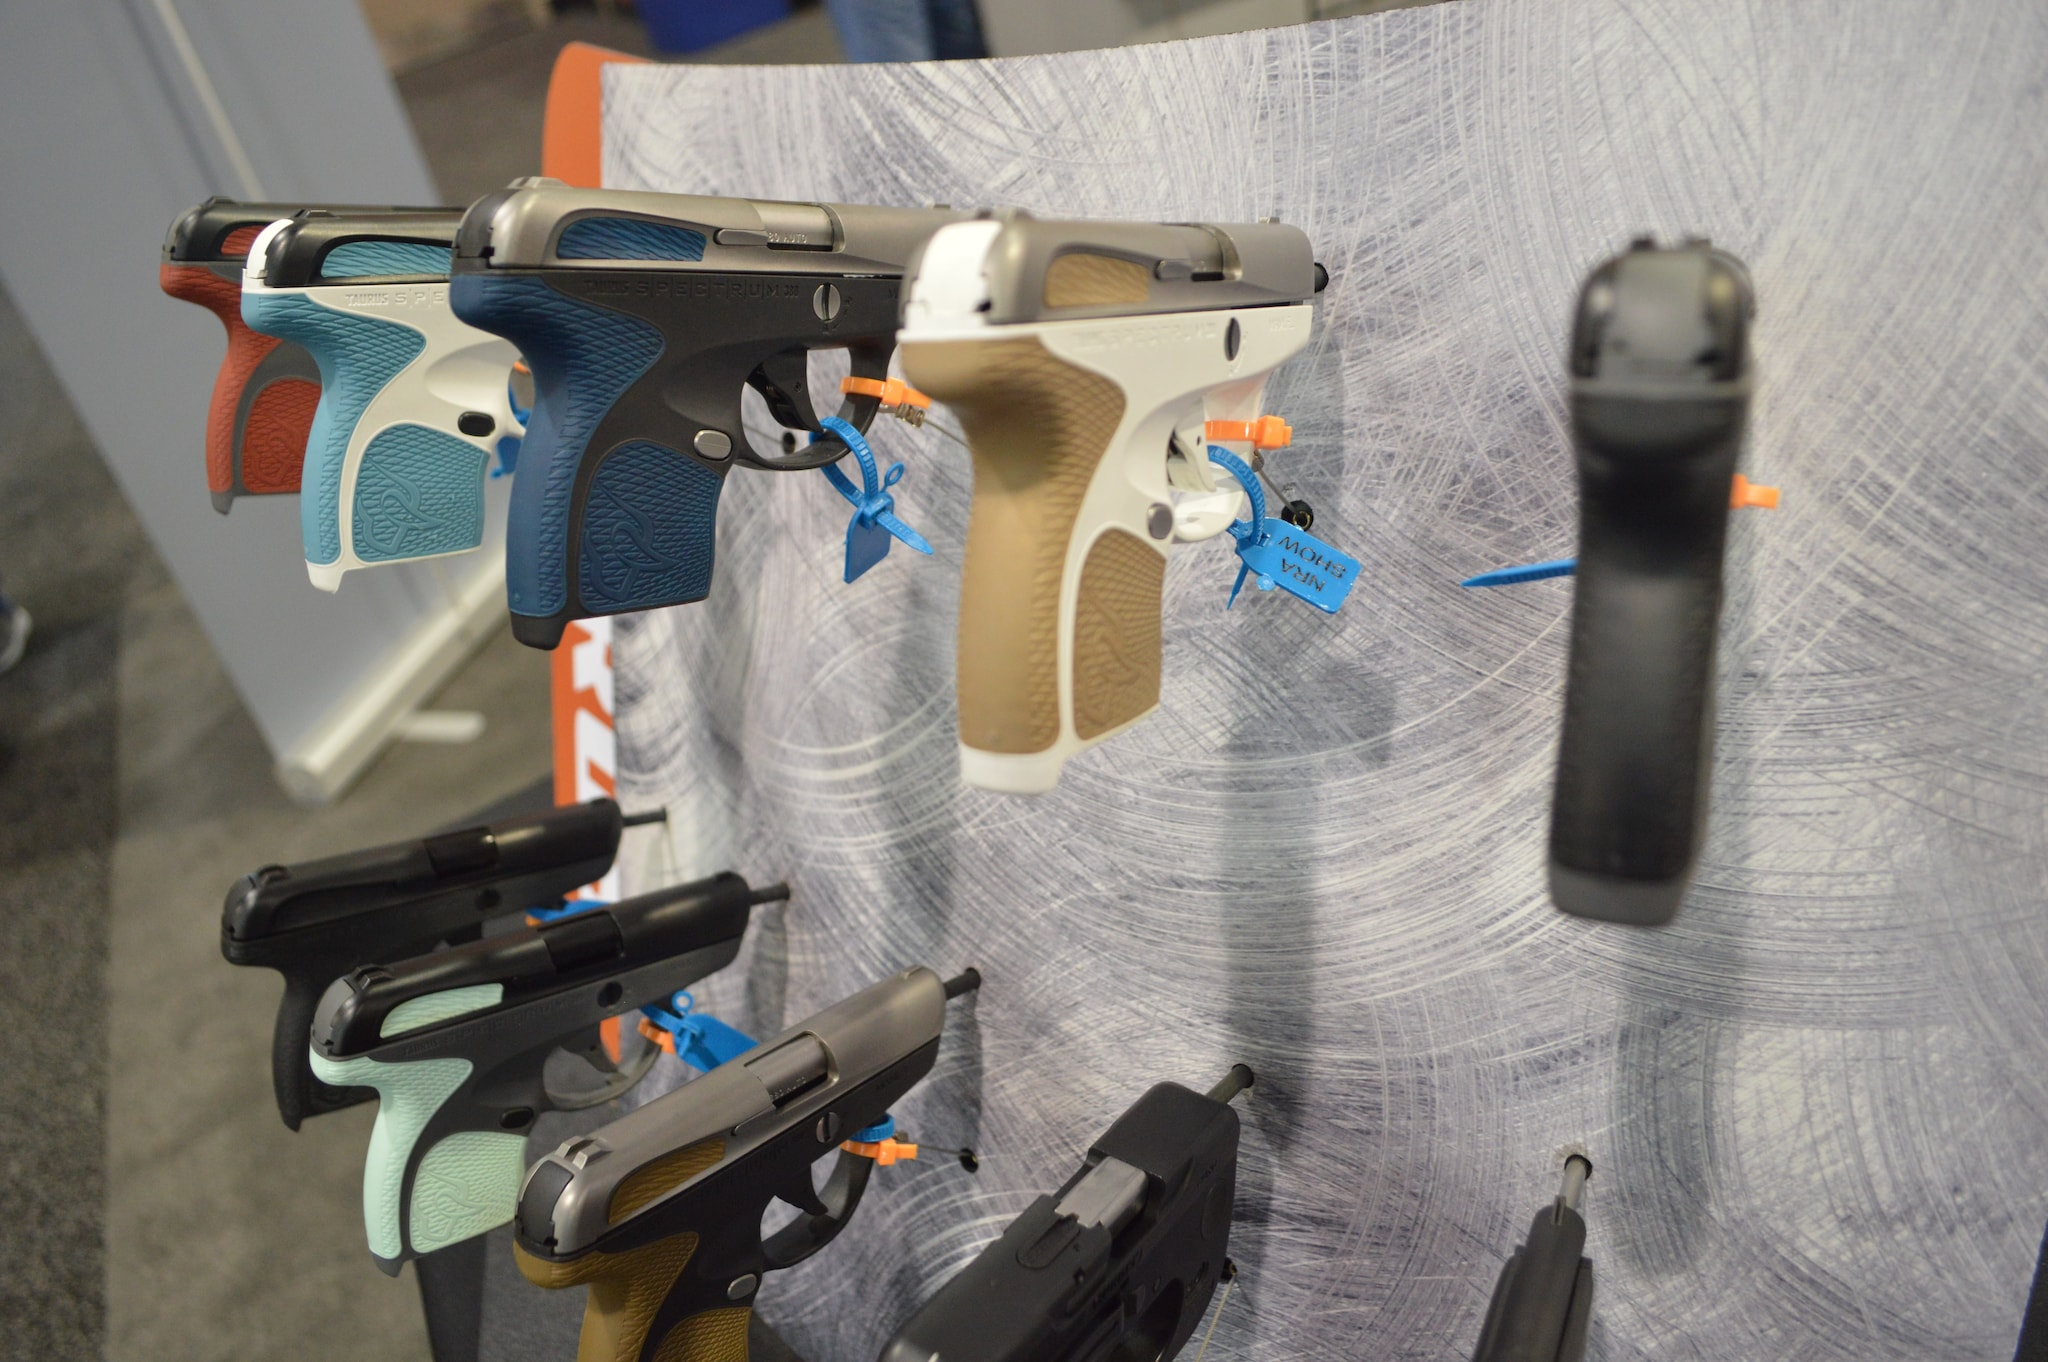 Looks don't make the gun, but Taurus sure reached into the depths of the color palette with their new-ish line of Spectrum pistols. (Photo: Kristin Alberts/Guns.com)